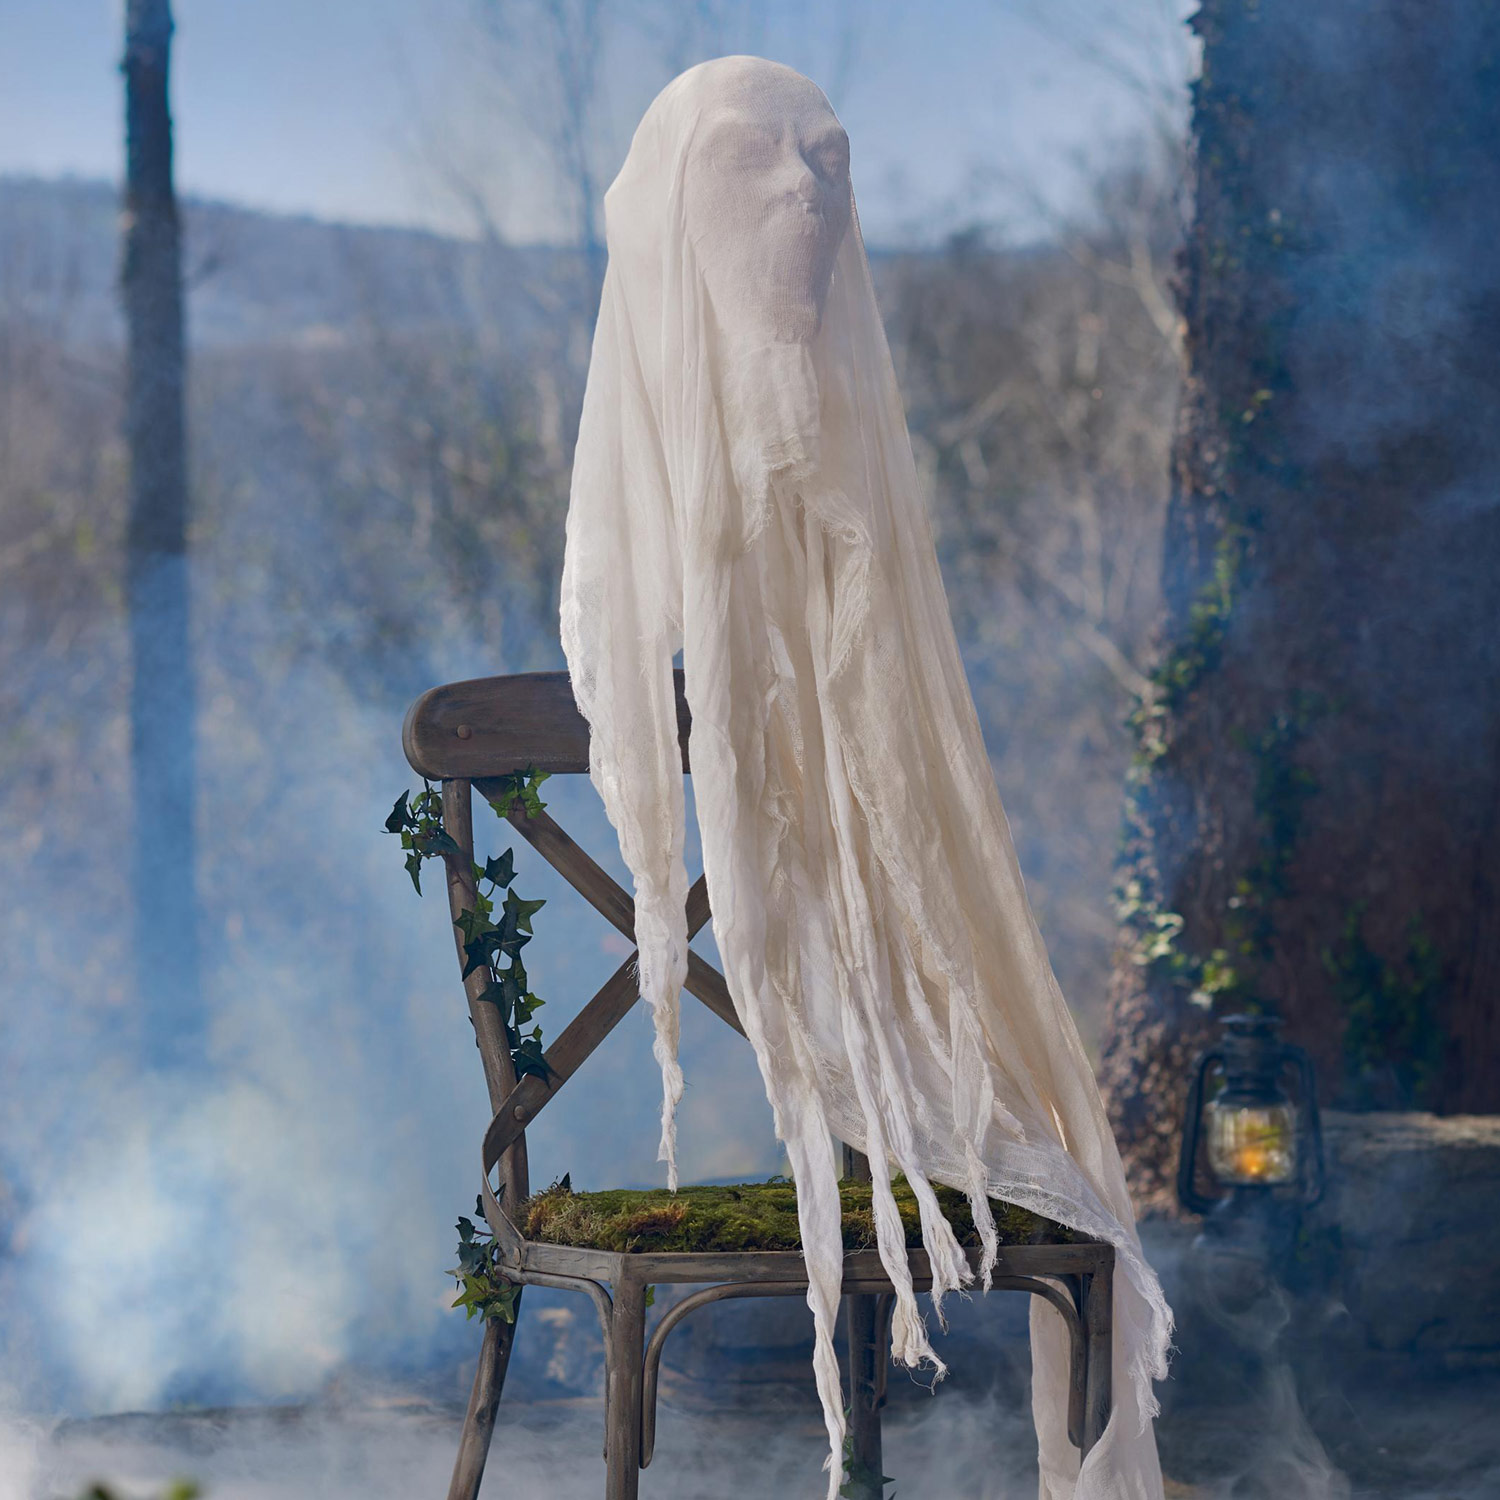 Disappearing Ghost Figure Illusion